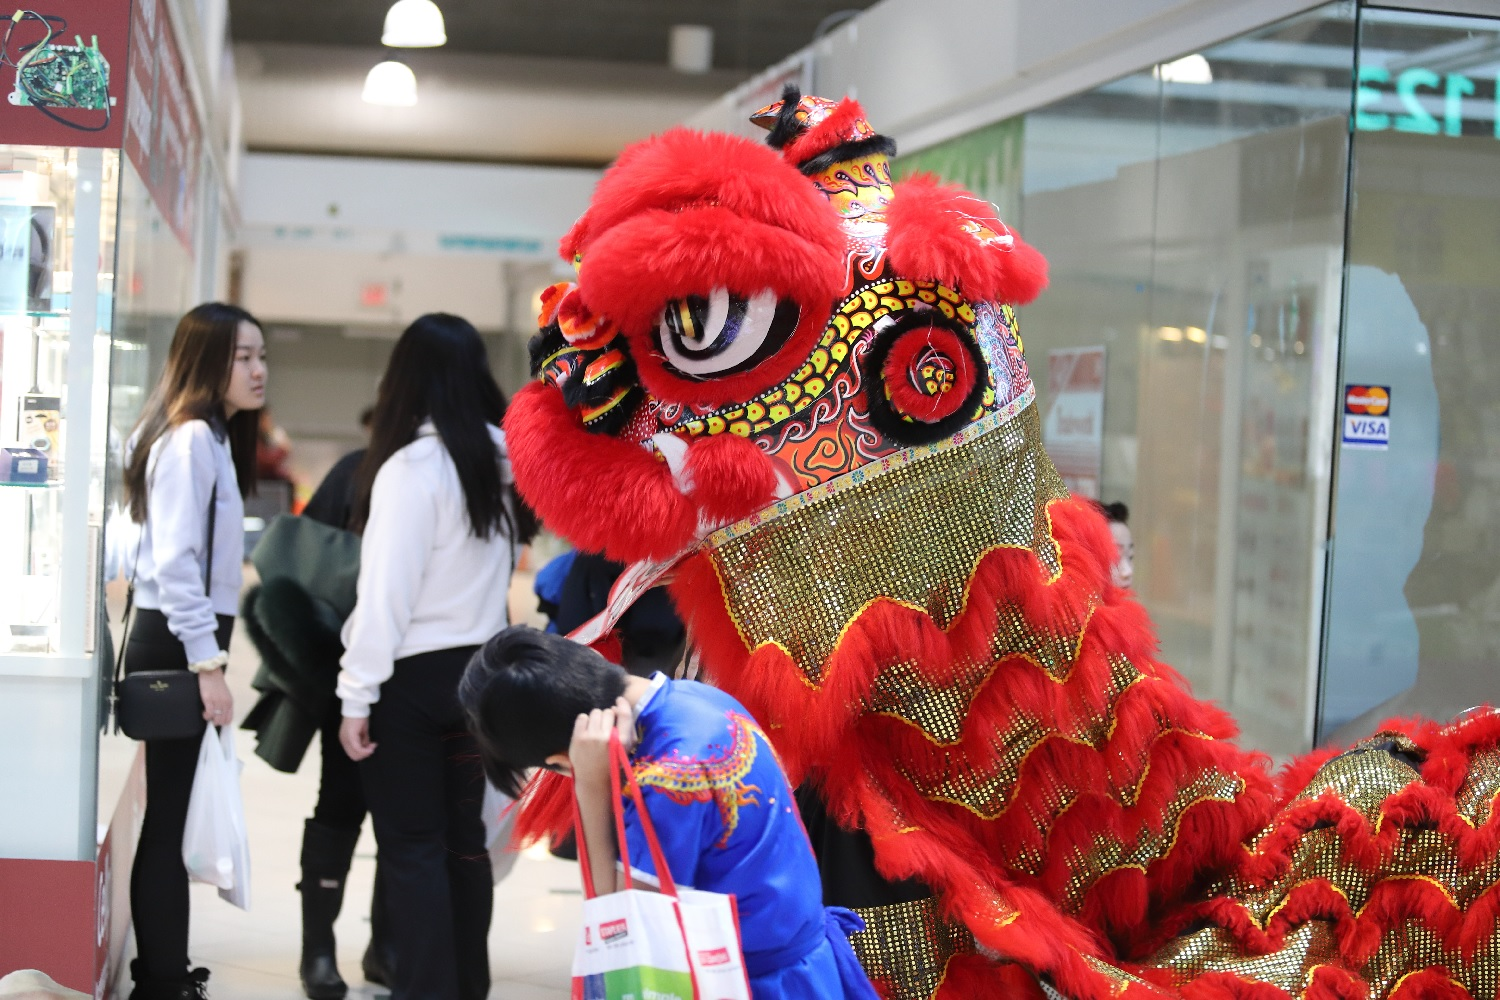 wayland-li-wushu-pacific-mall-chinese-new-year-2019-18.jpg